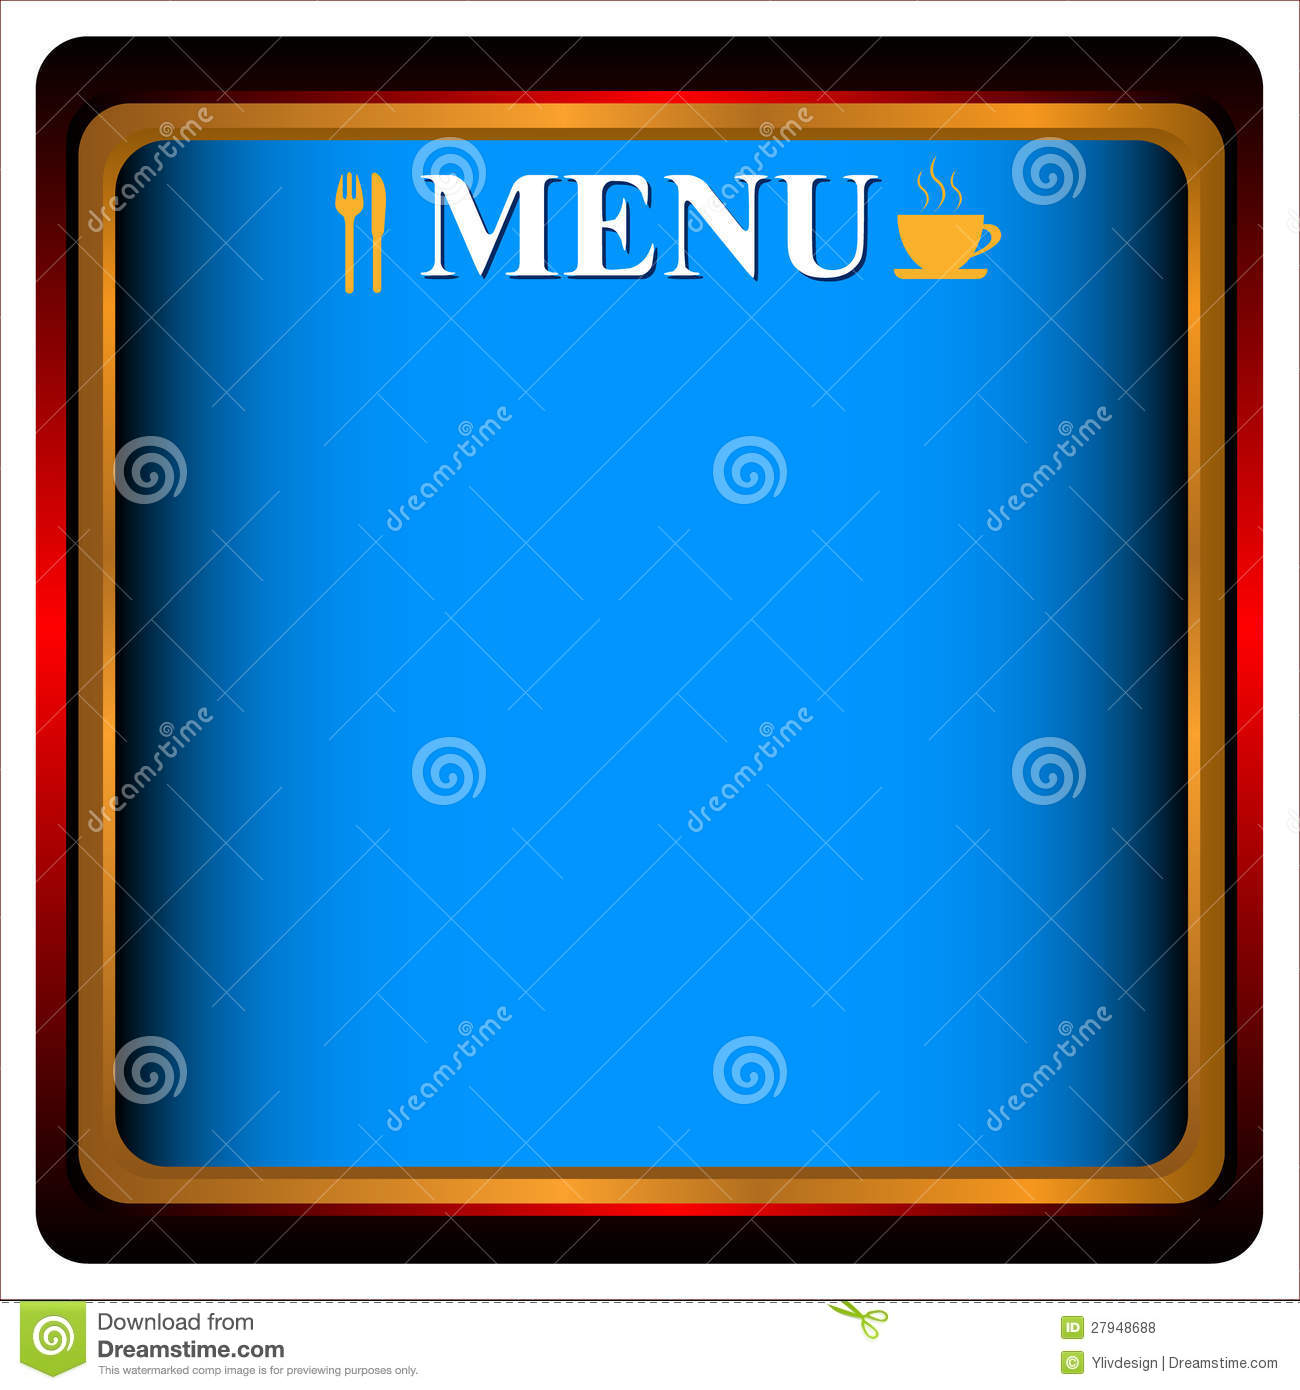 Menu background royalty free stock photos image 27948688